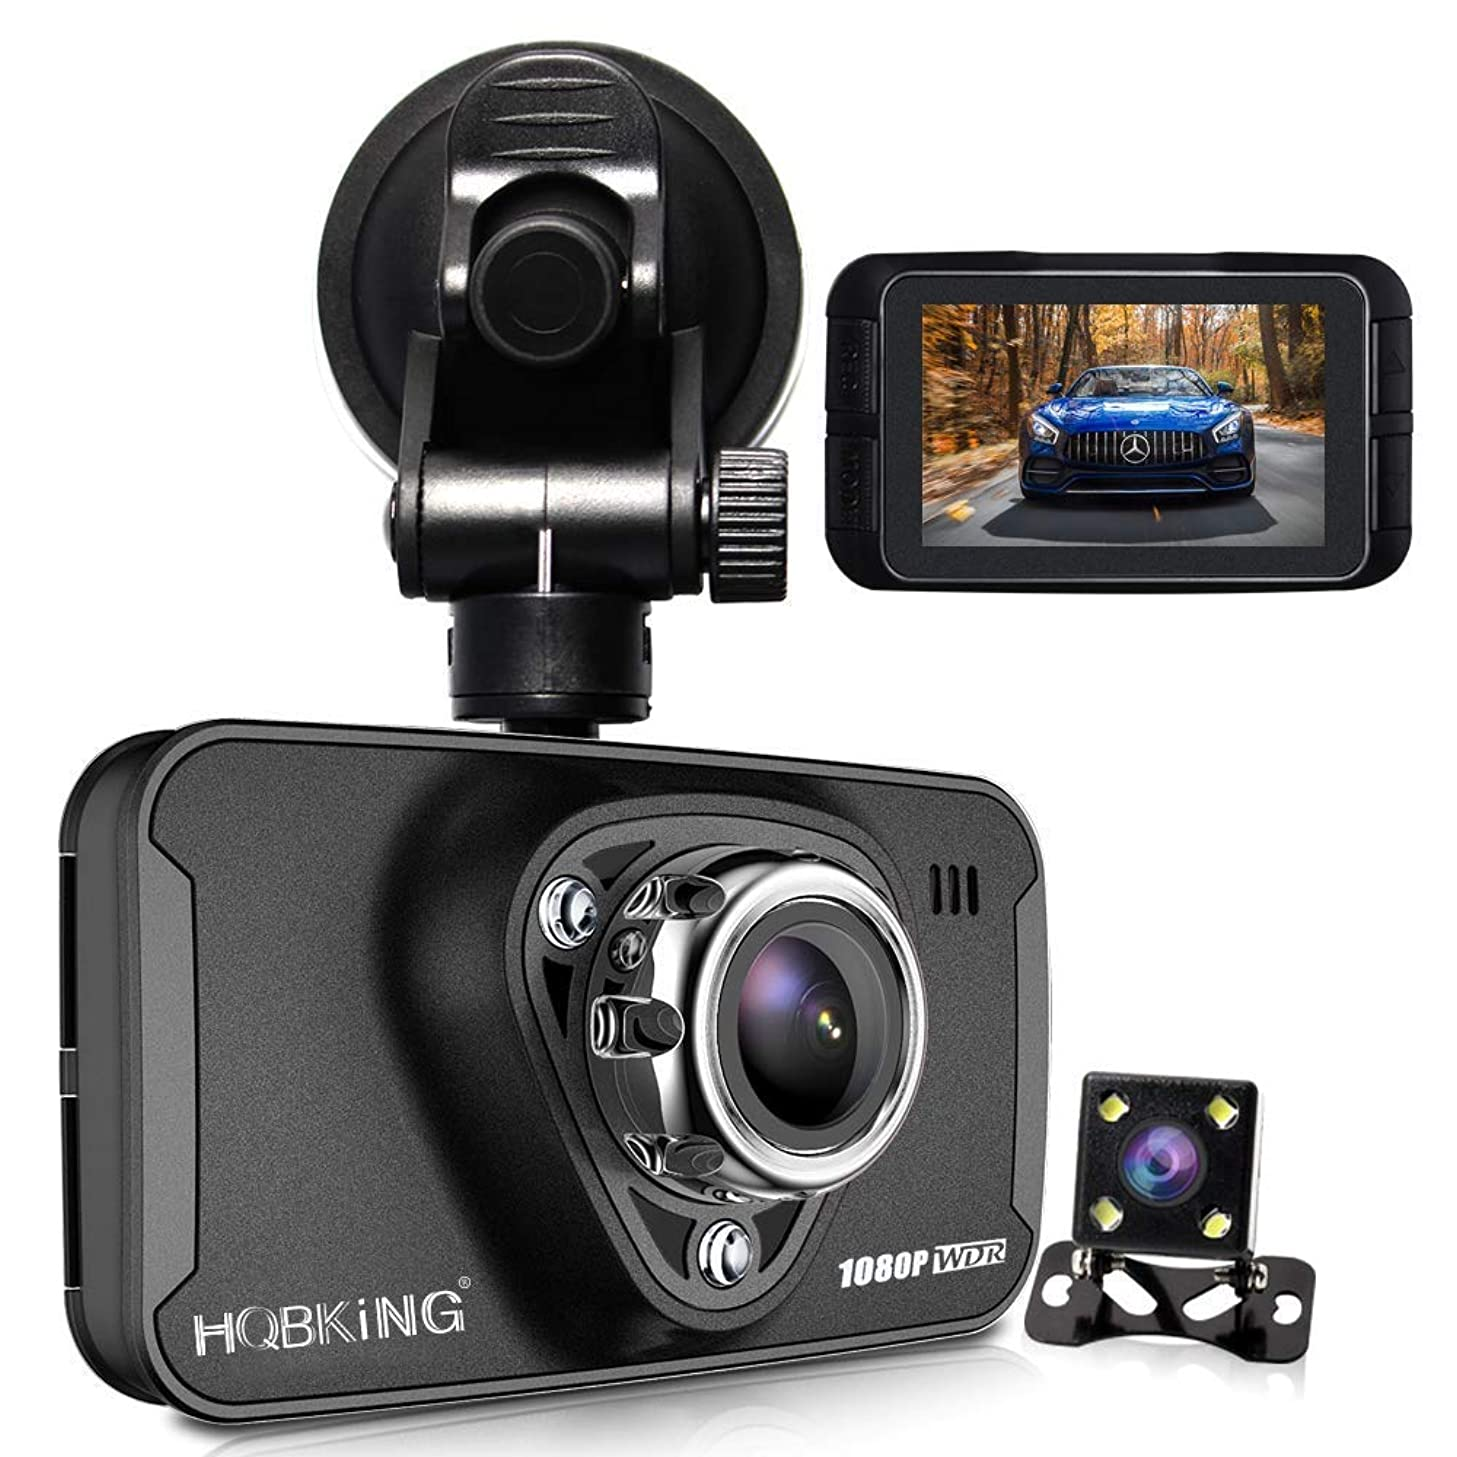 1080P Dual Dash Cam Full HD Front and Rear Camera for Cars, Driving Recorder with IR Sensor, 170 Degree Wide Angle 6G Lens, G-Sensor, WDR, Night Vision, Loop Recording,2.7